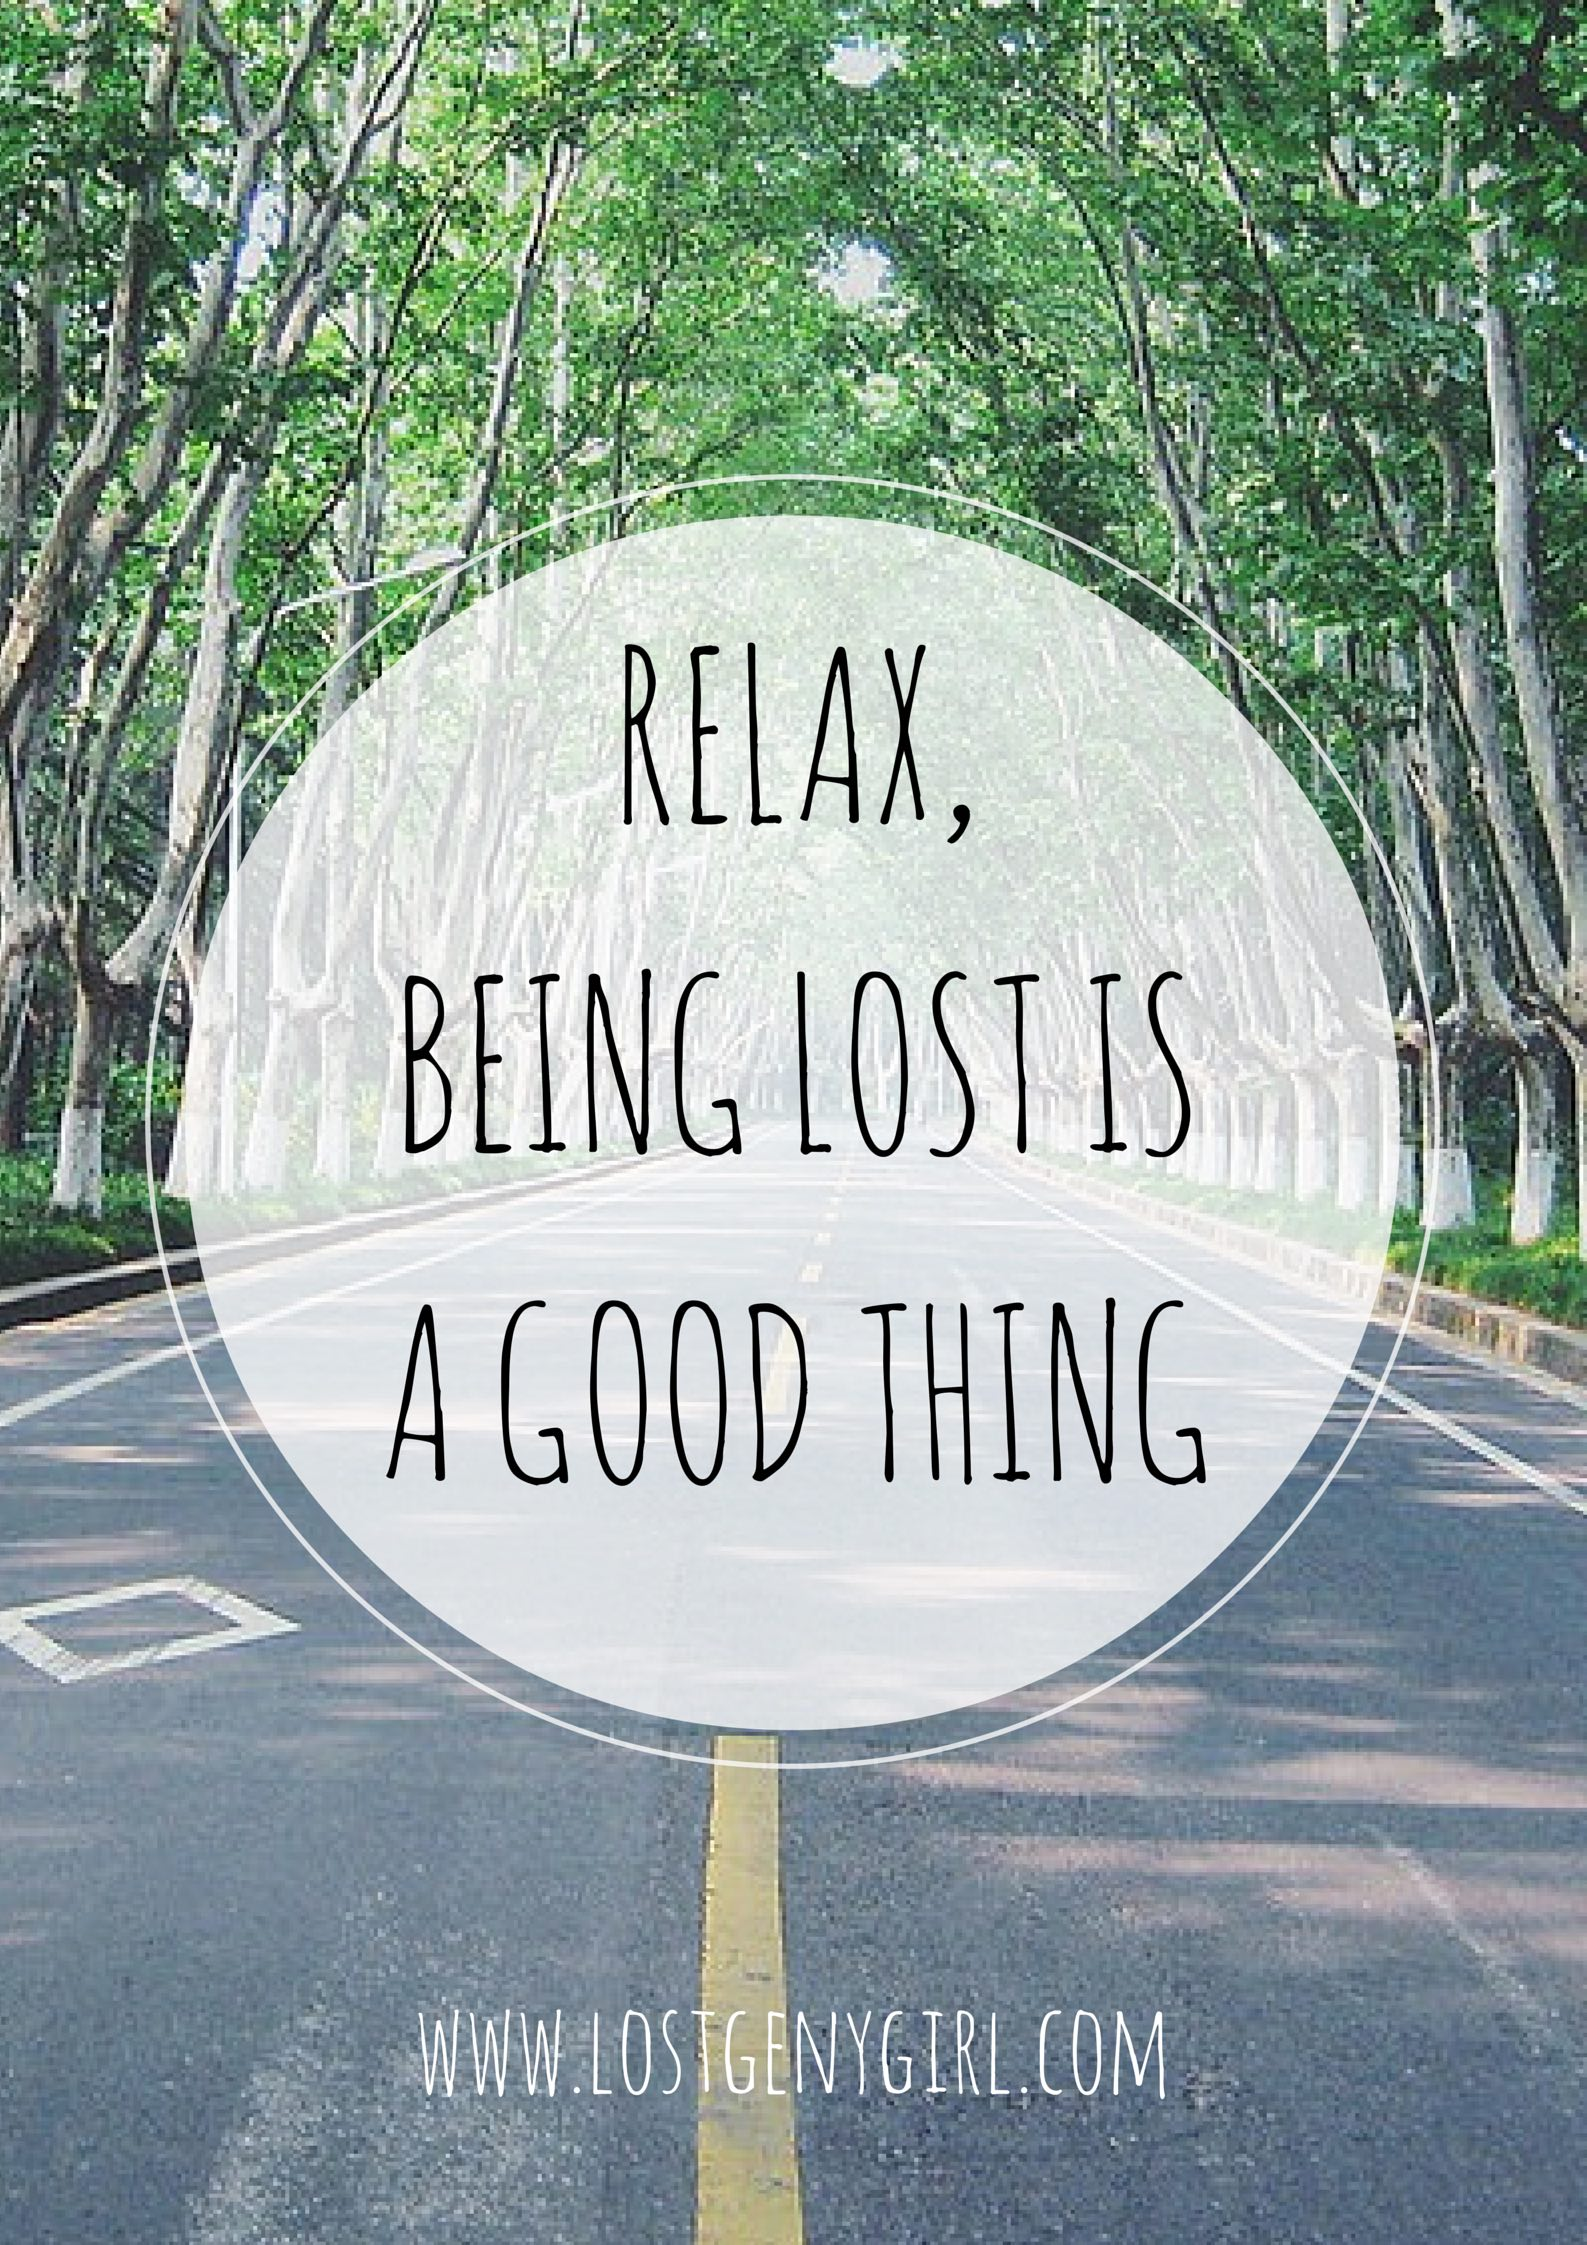 Relax, Being Lost is a Good Thing